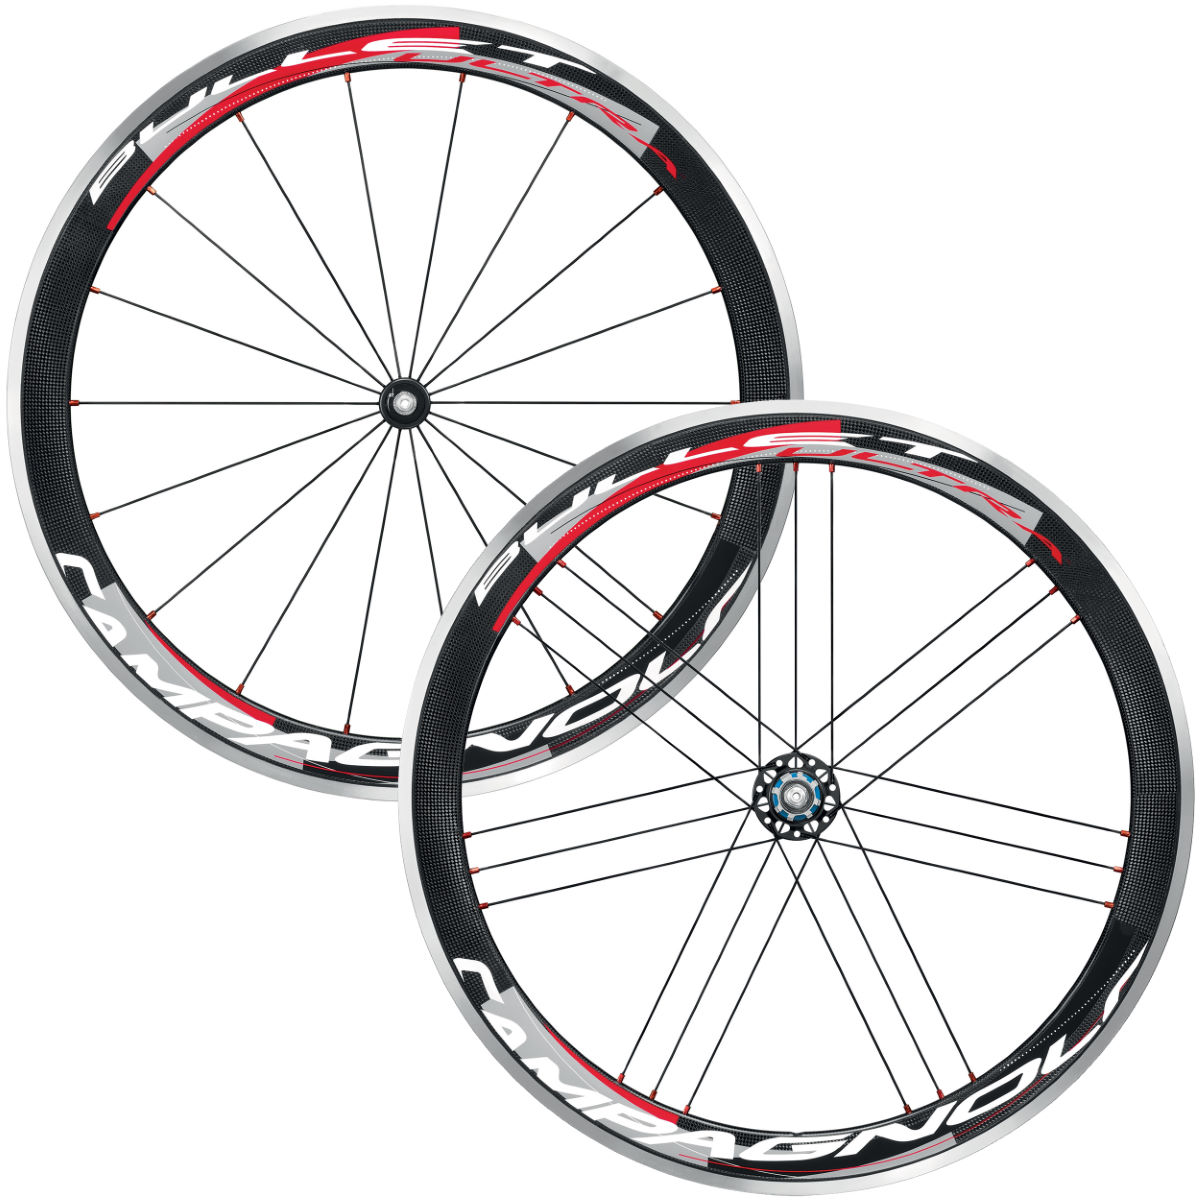 Paires de roues Campagnolo Bullet Ultra 50 Cult Dark Label (carbone) - Shimano Freehub Black/White/Red Roues performance